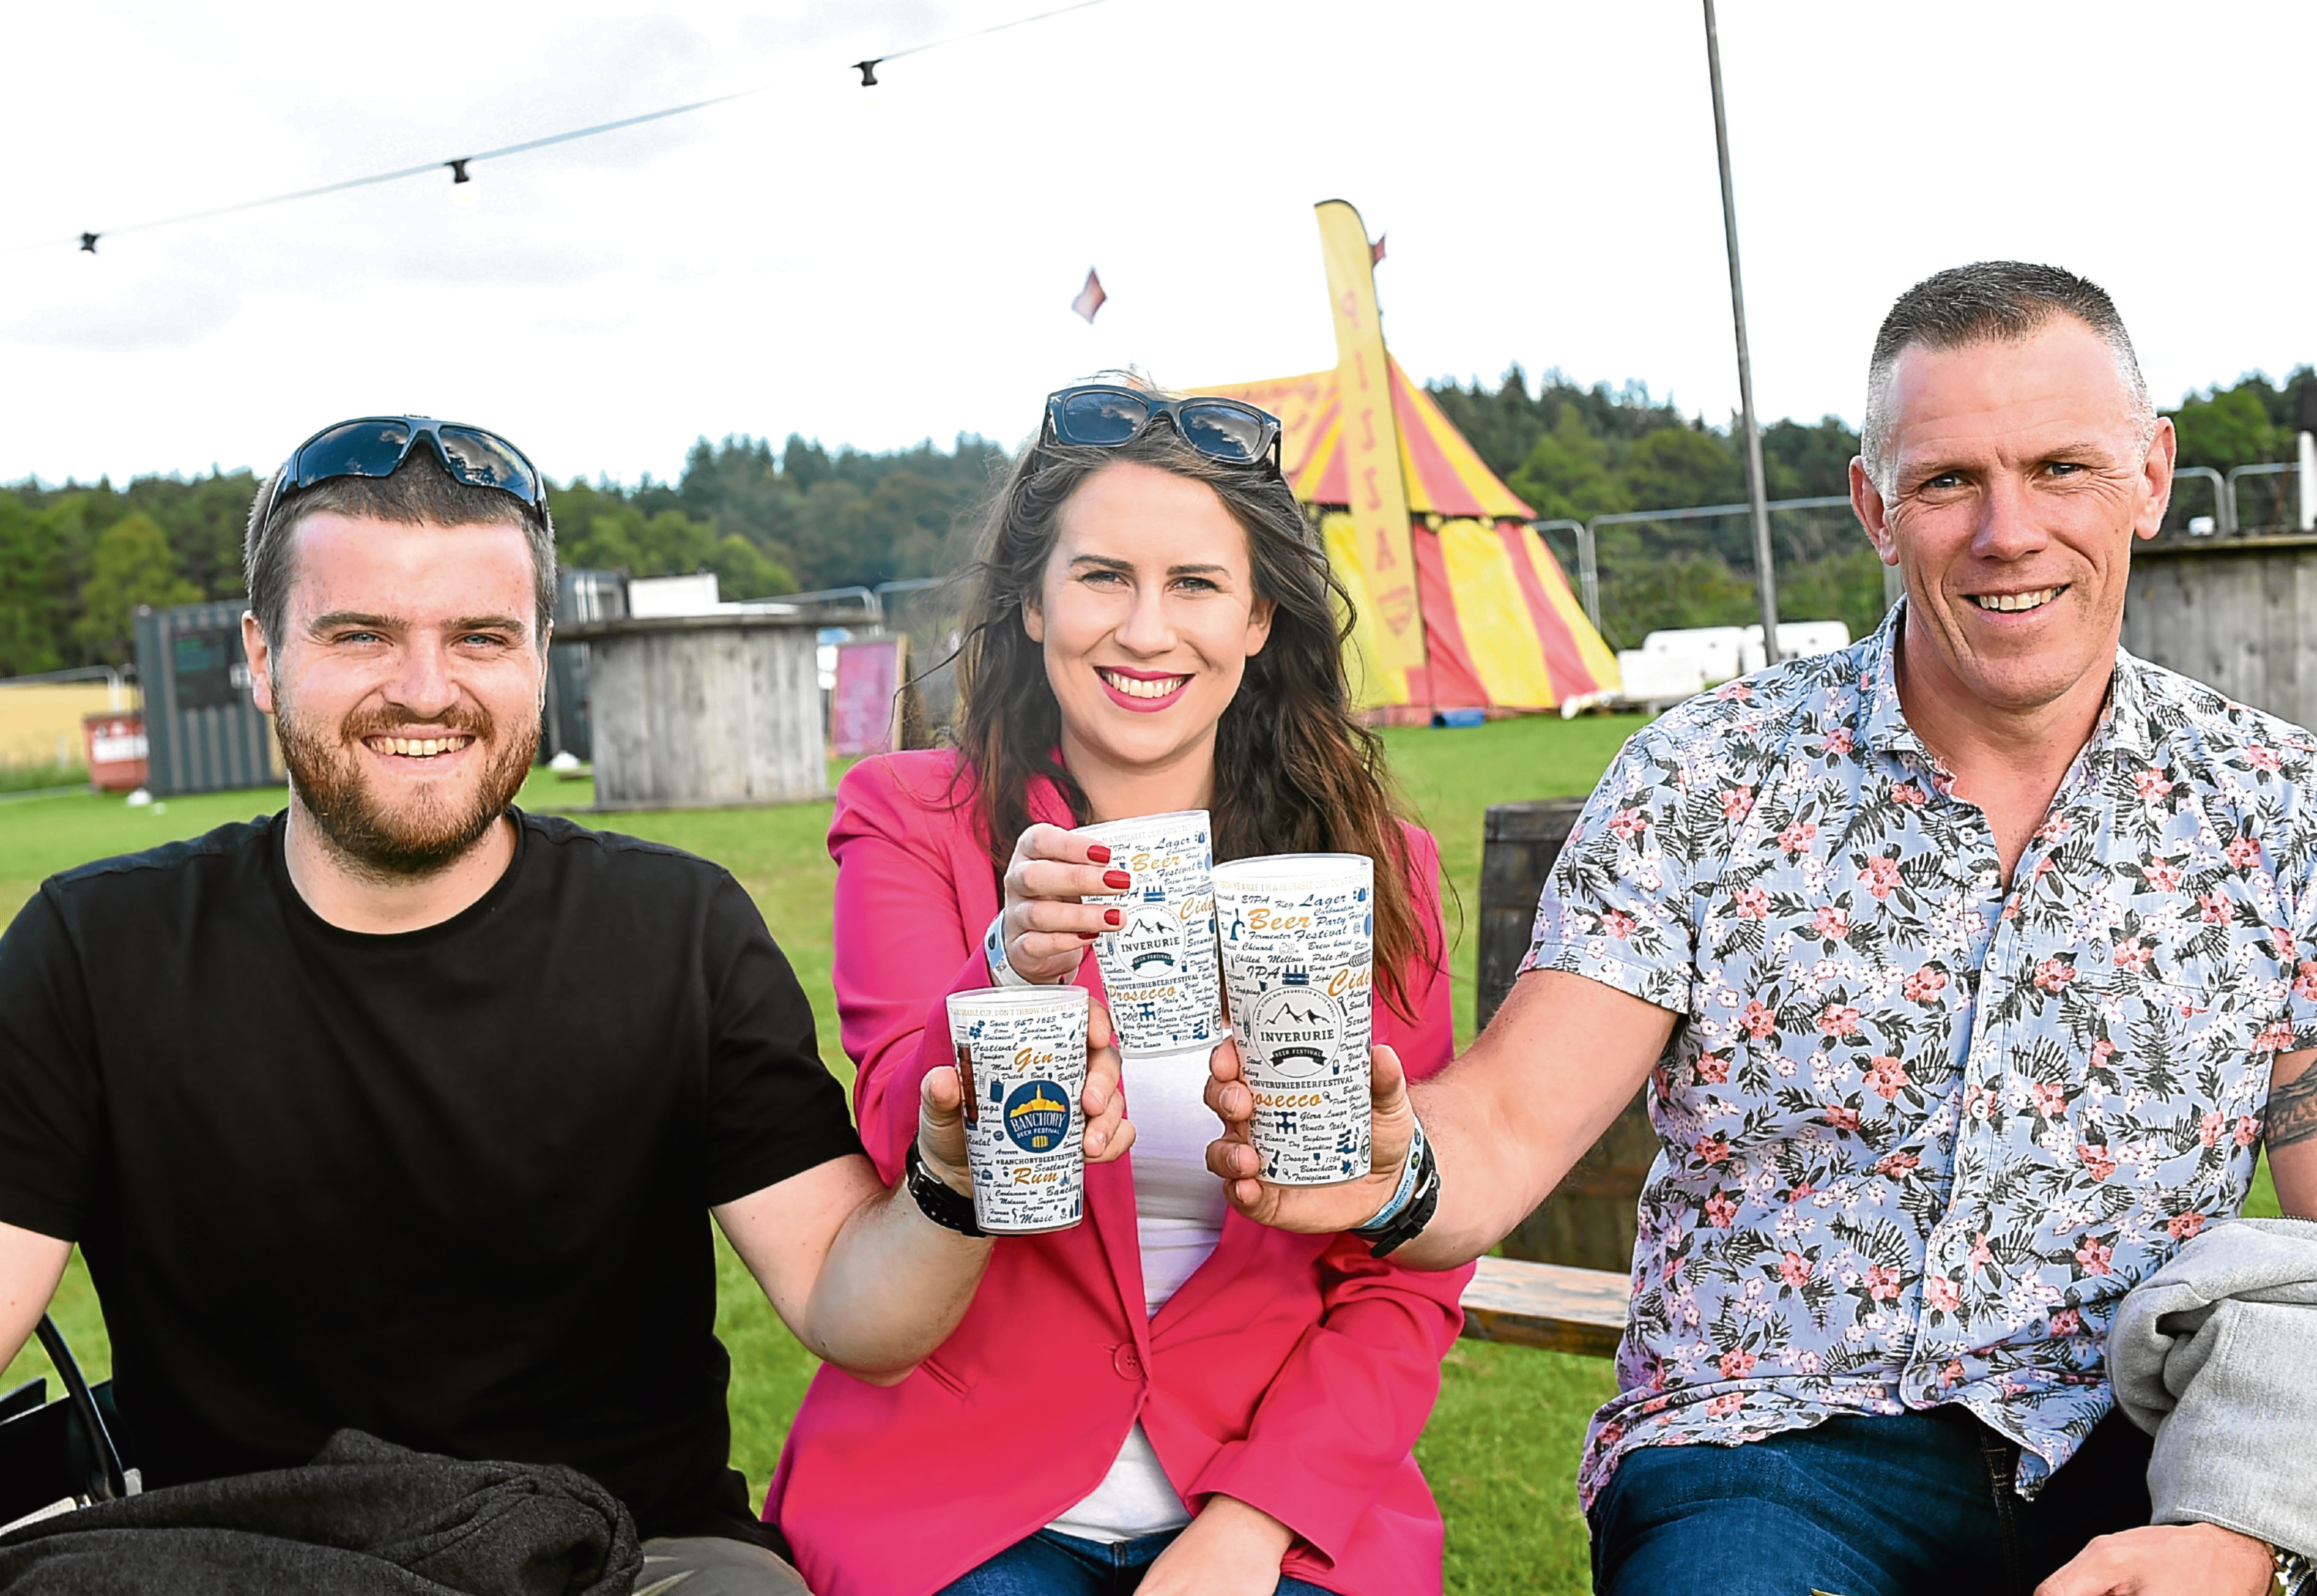 Banchory Beer Festival  Pictured are from left, Paul Kelman, Sonia Brownlee and Peter Hepburn Picture by DARRELL BENNS